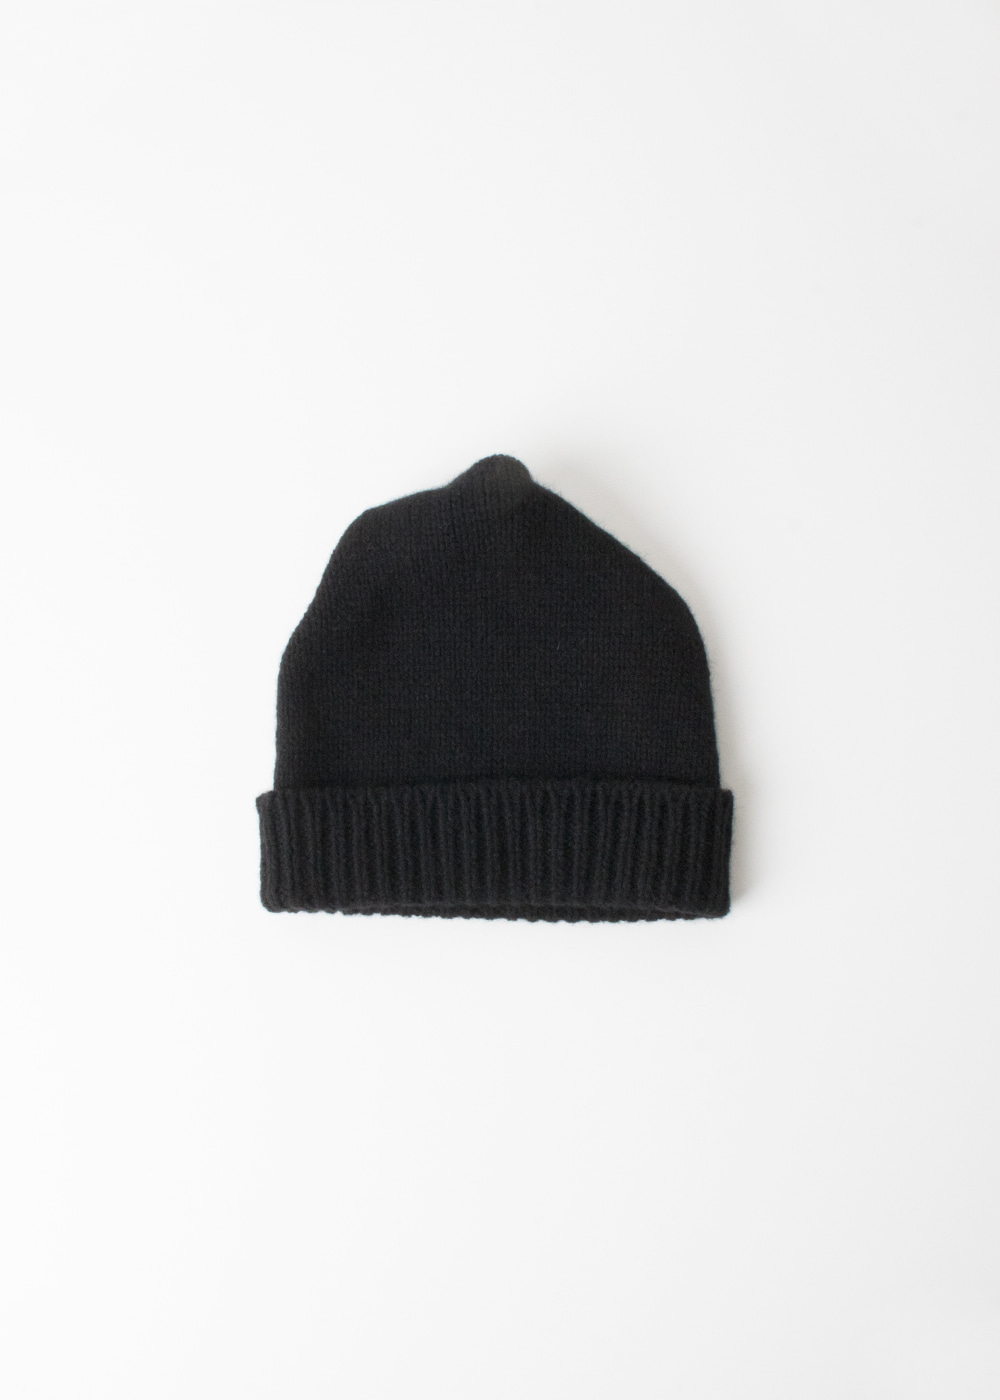 PLEATS KNIT CAP - black